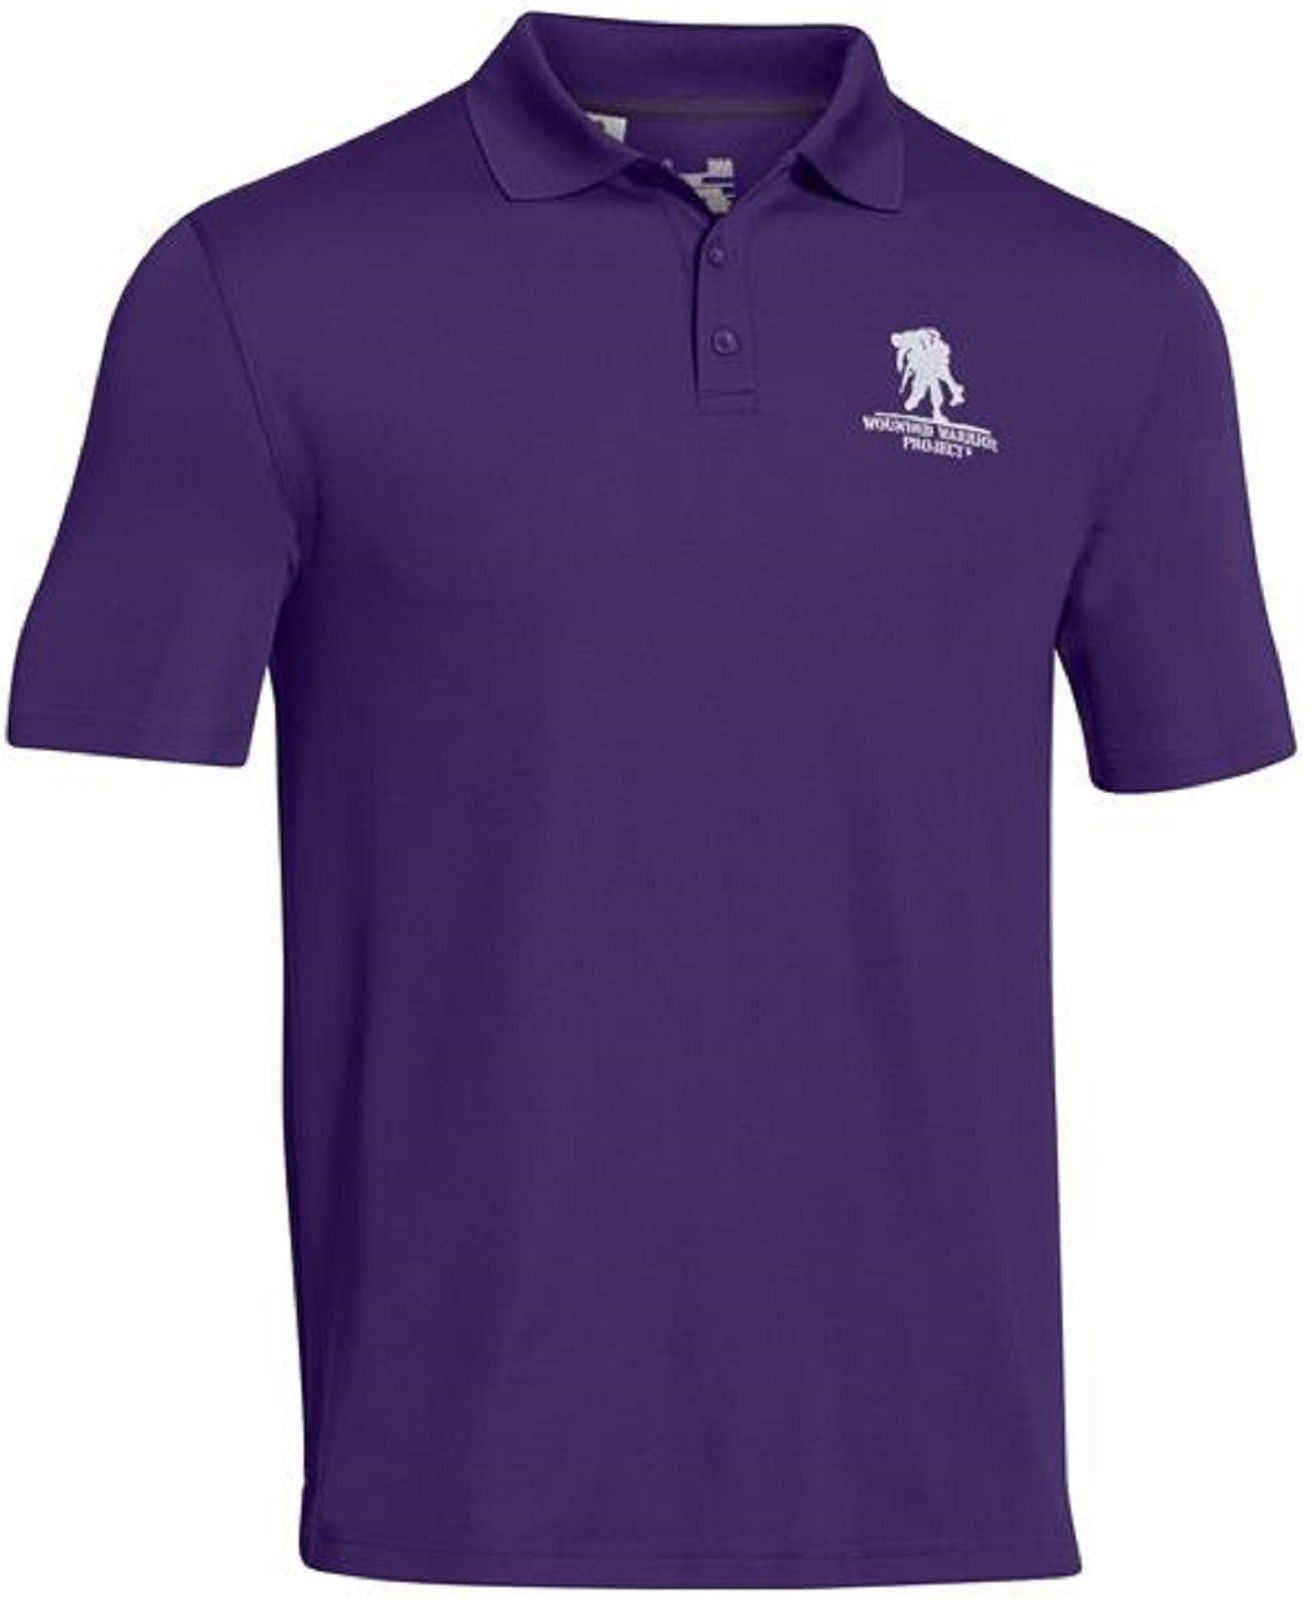 1885e2d2 Under Armour Performance Polo Shirt Wounded Warrior Project Collared Golf  Shirts